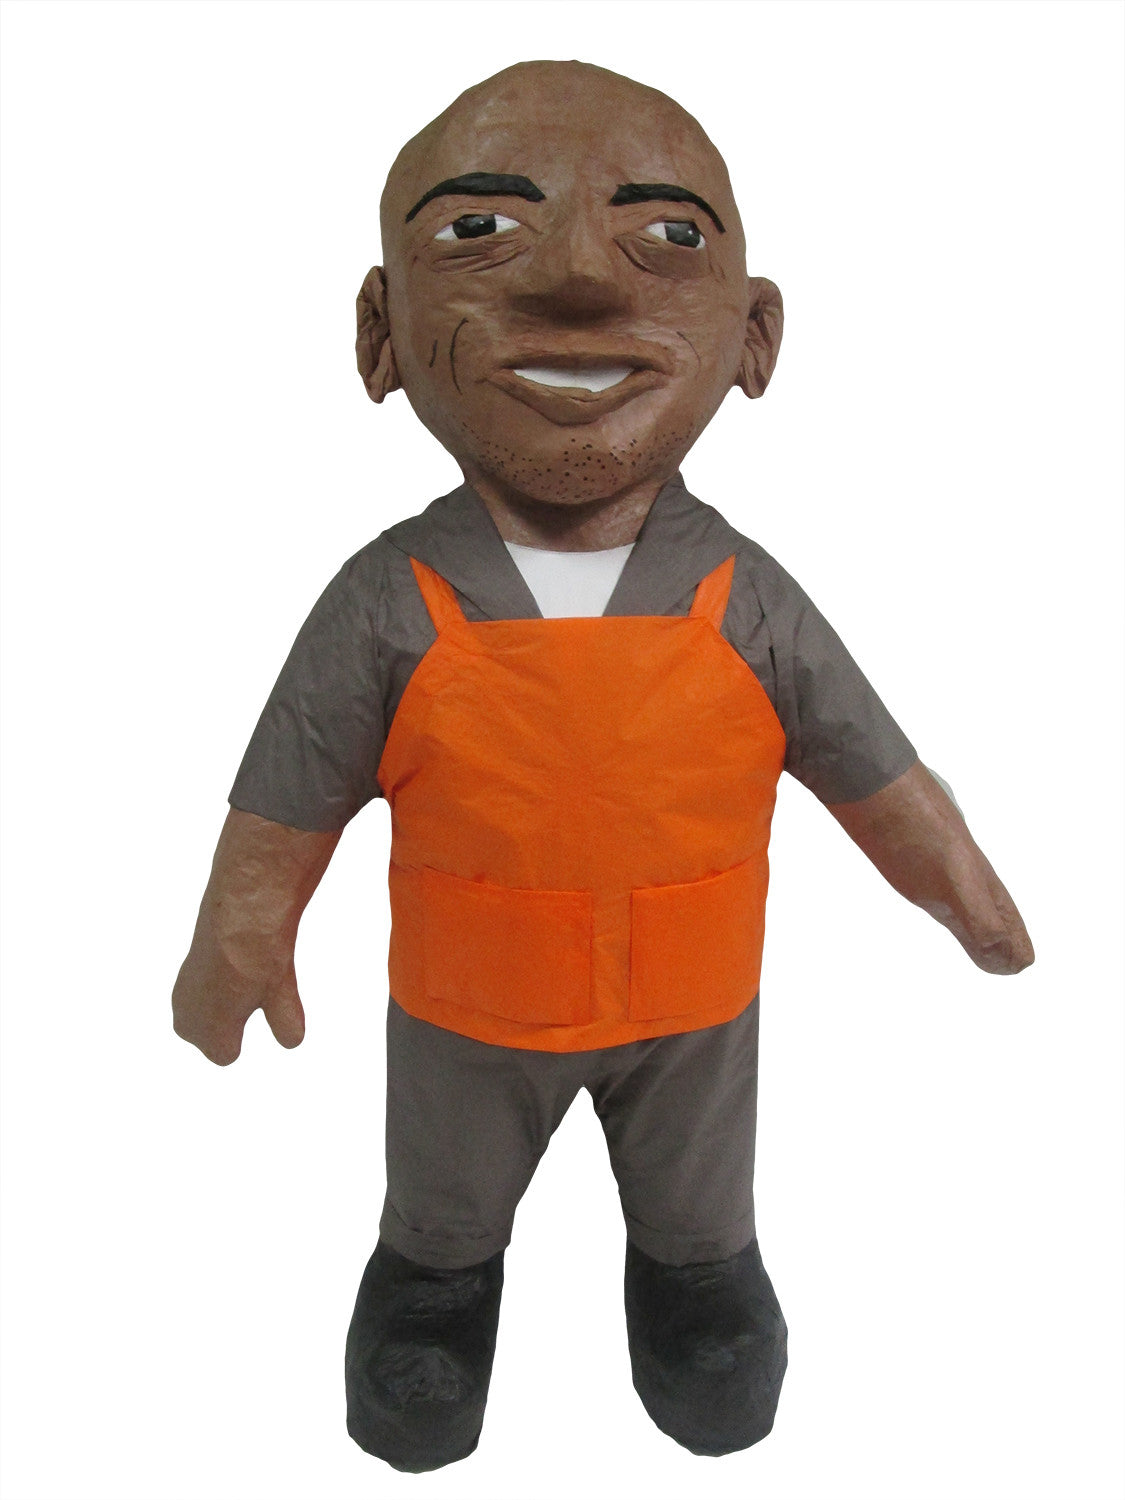 Man With Gray Shirt Custom Pinata